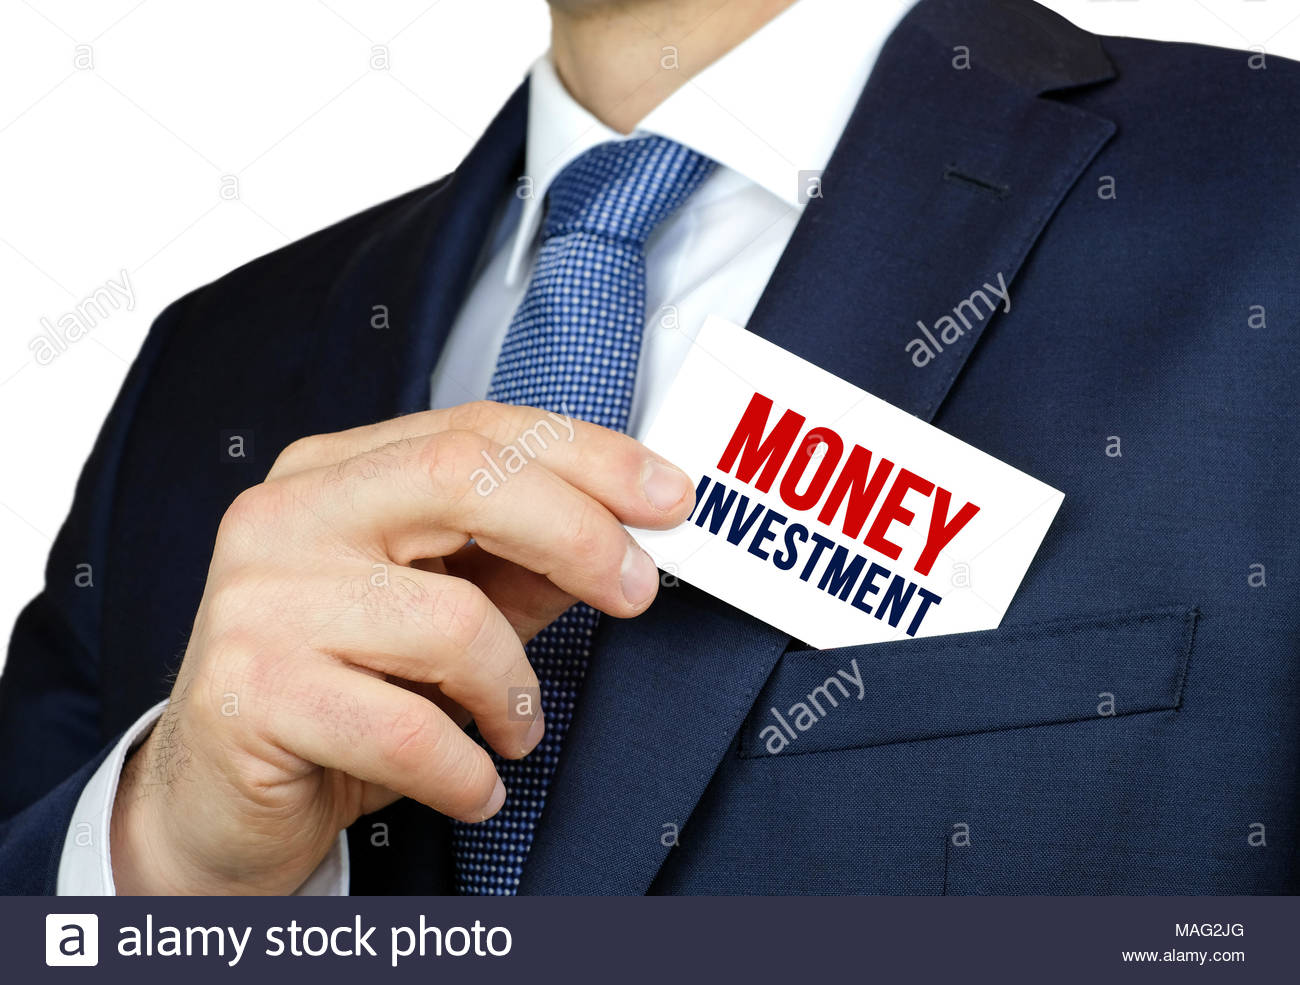 Money investment business card advice stock photo 178603560 alamy money investment business card advice colourmoves